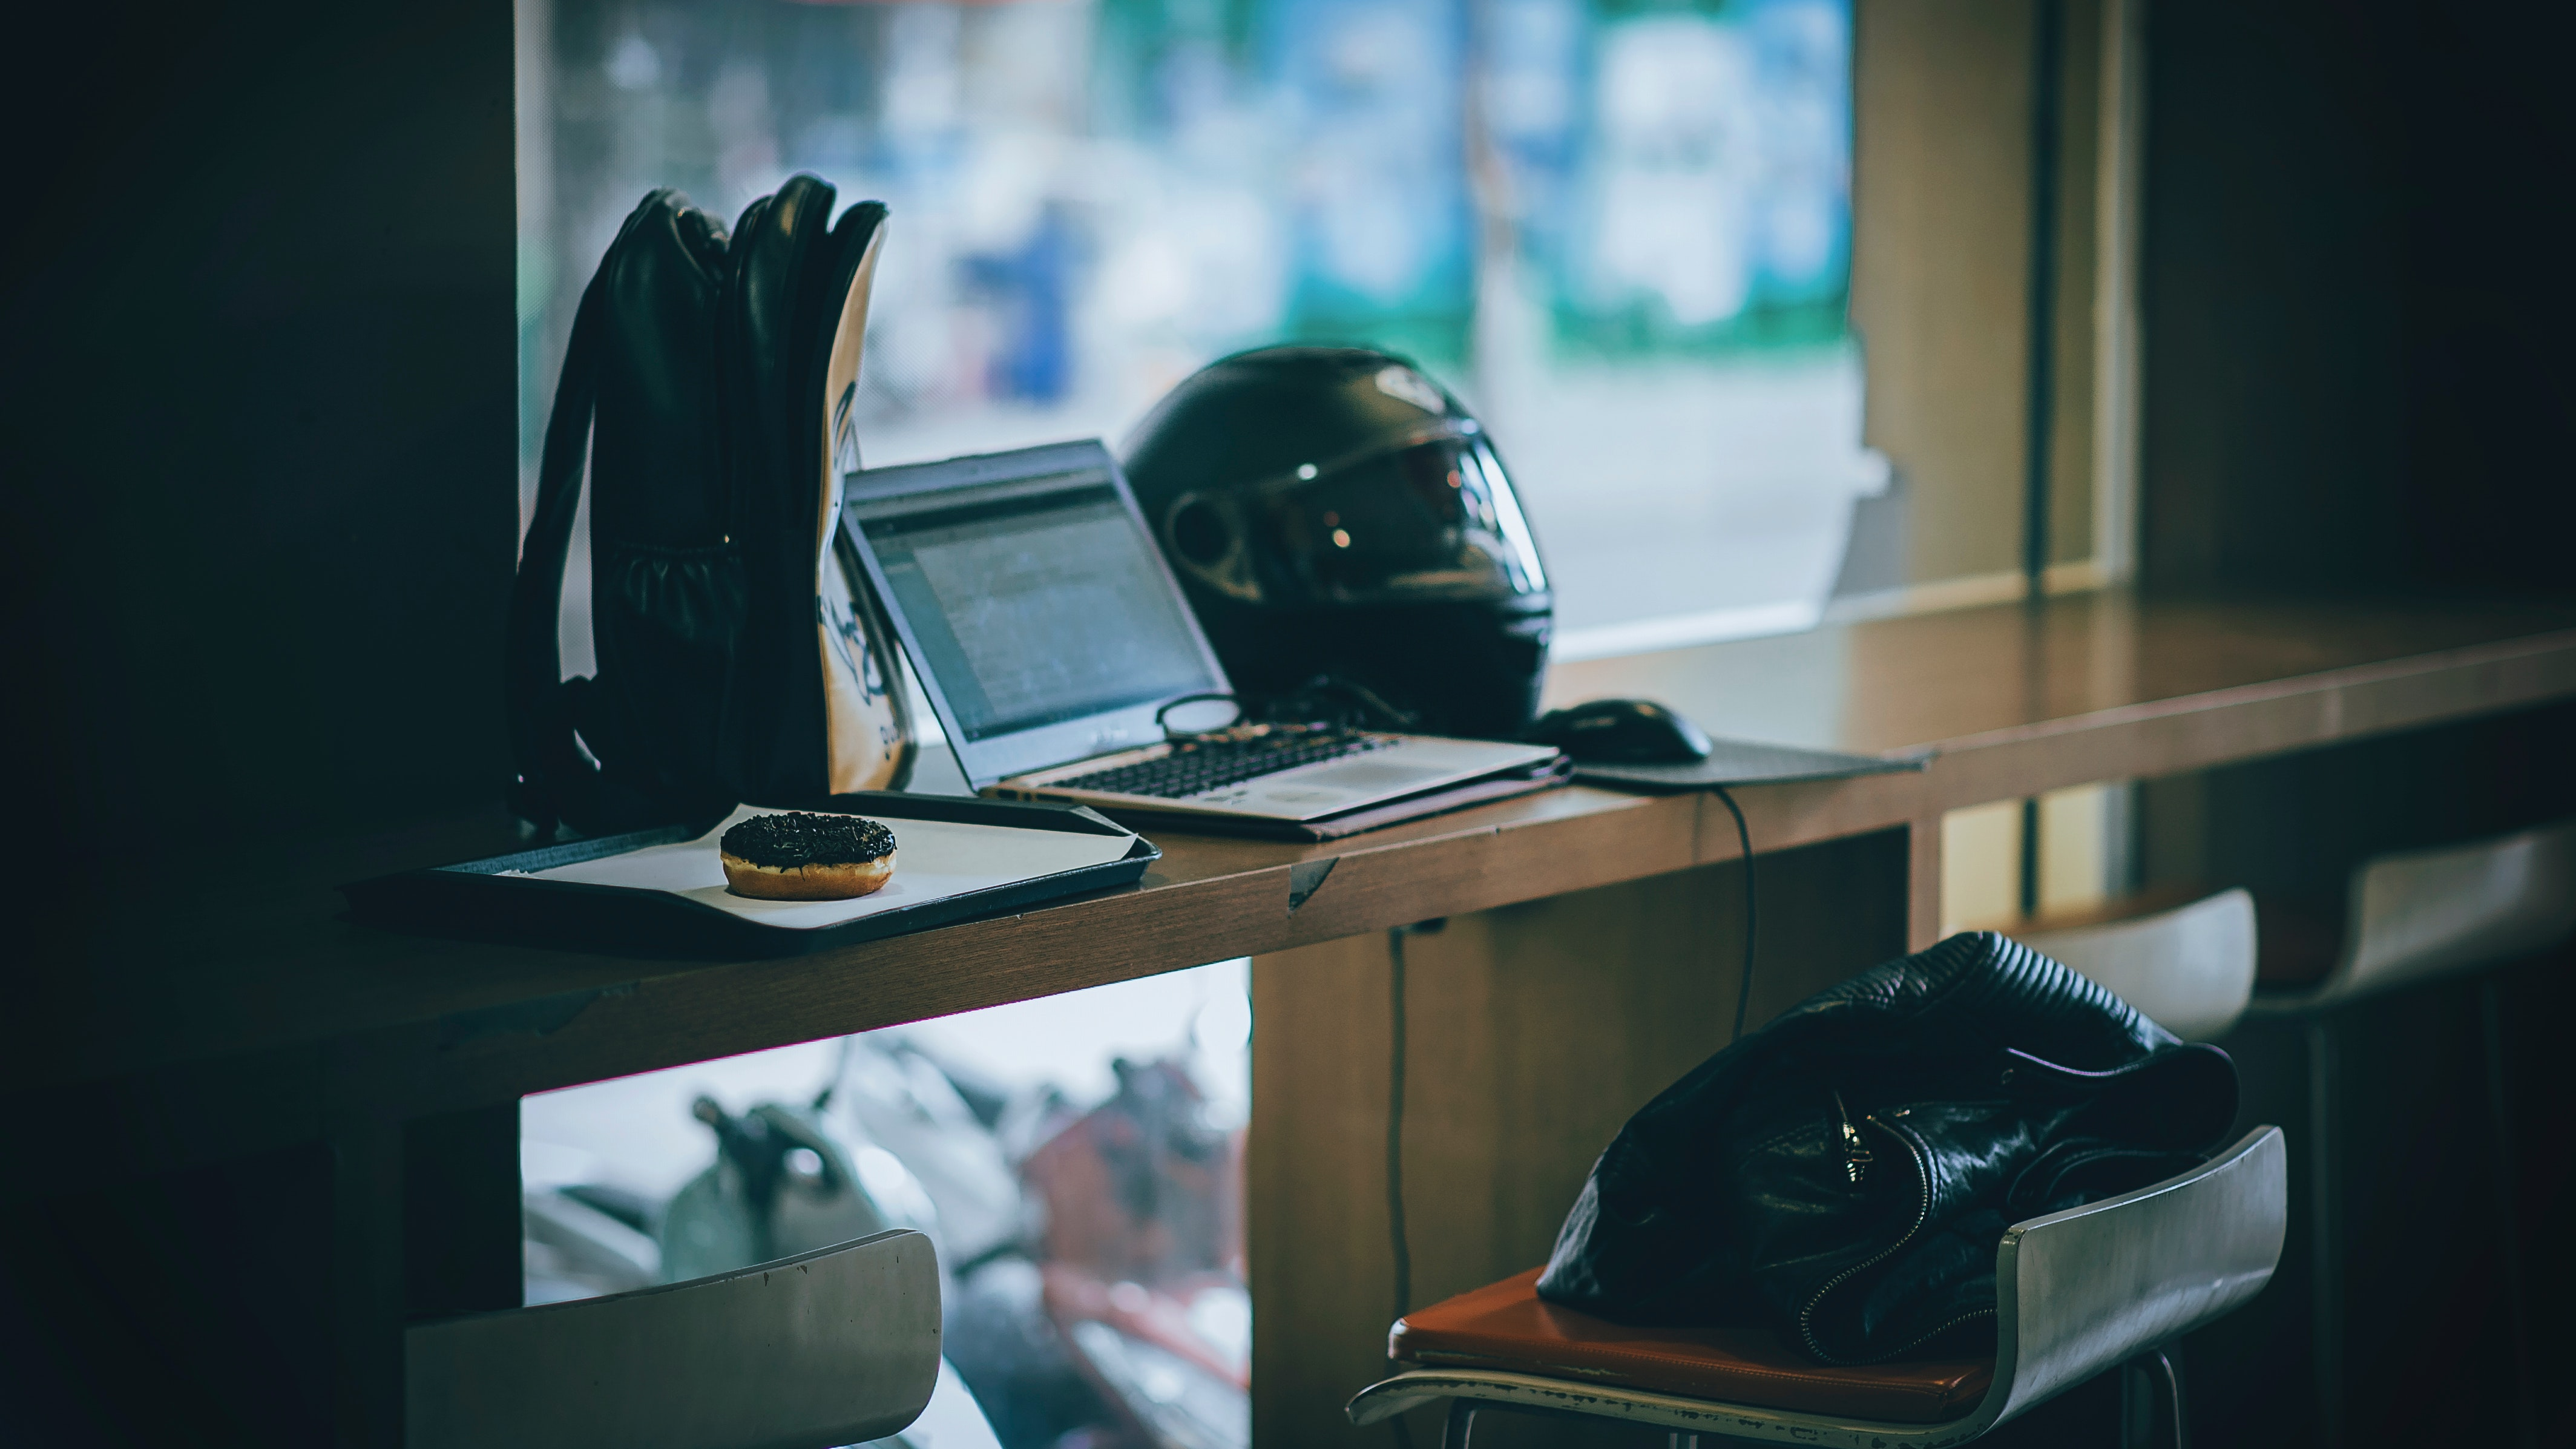 Gray Laptop Near Black Full-face Helmet, Adult, Internet, Working, Work, HQ Photo